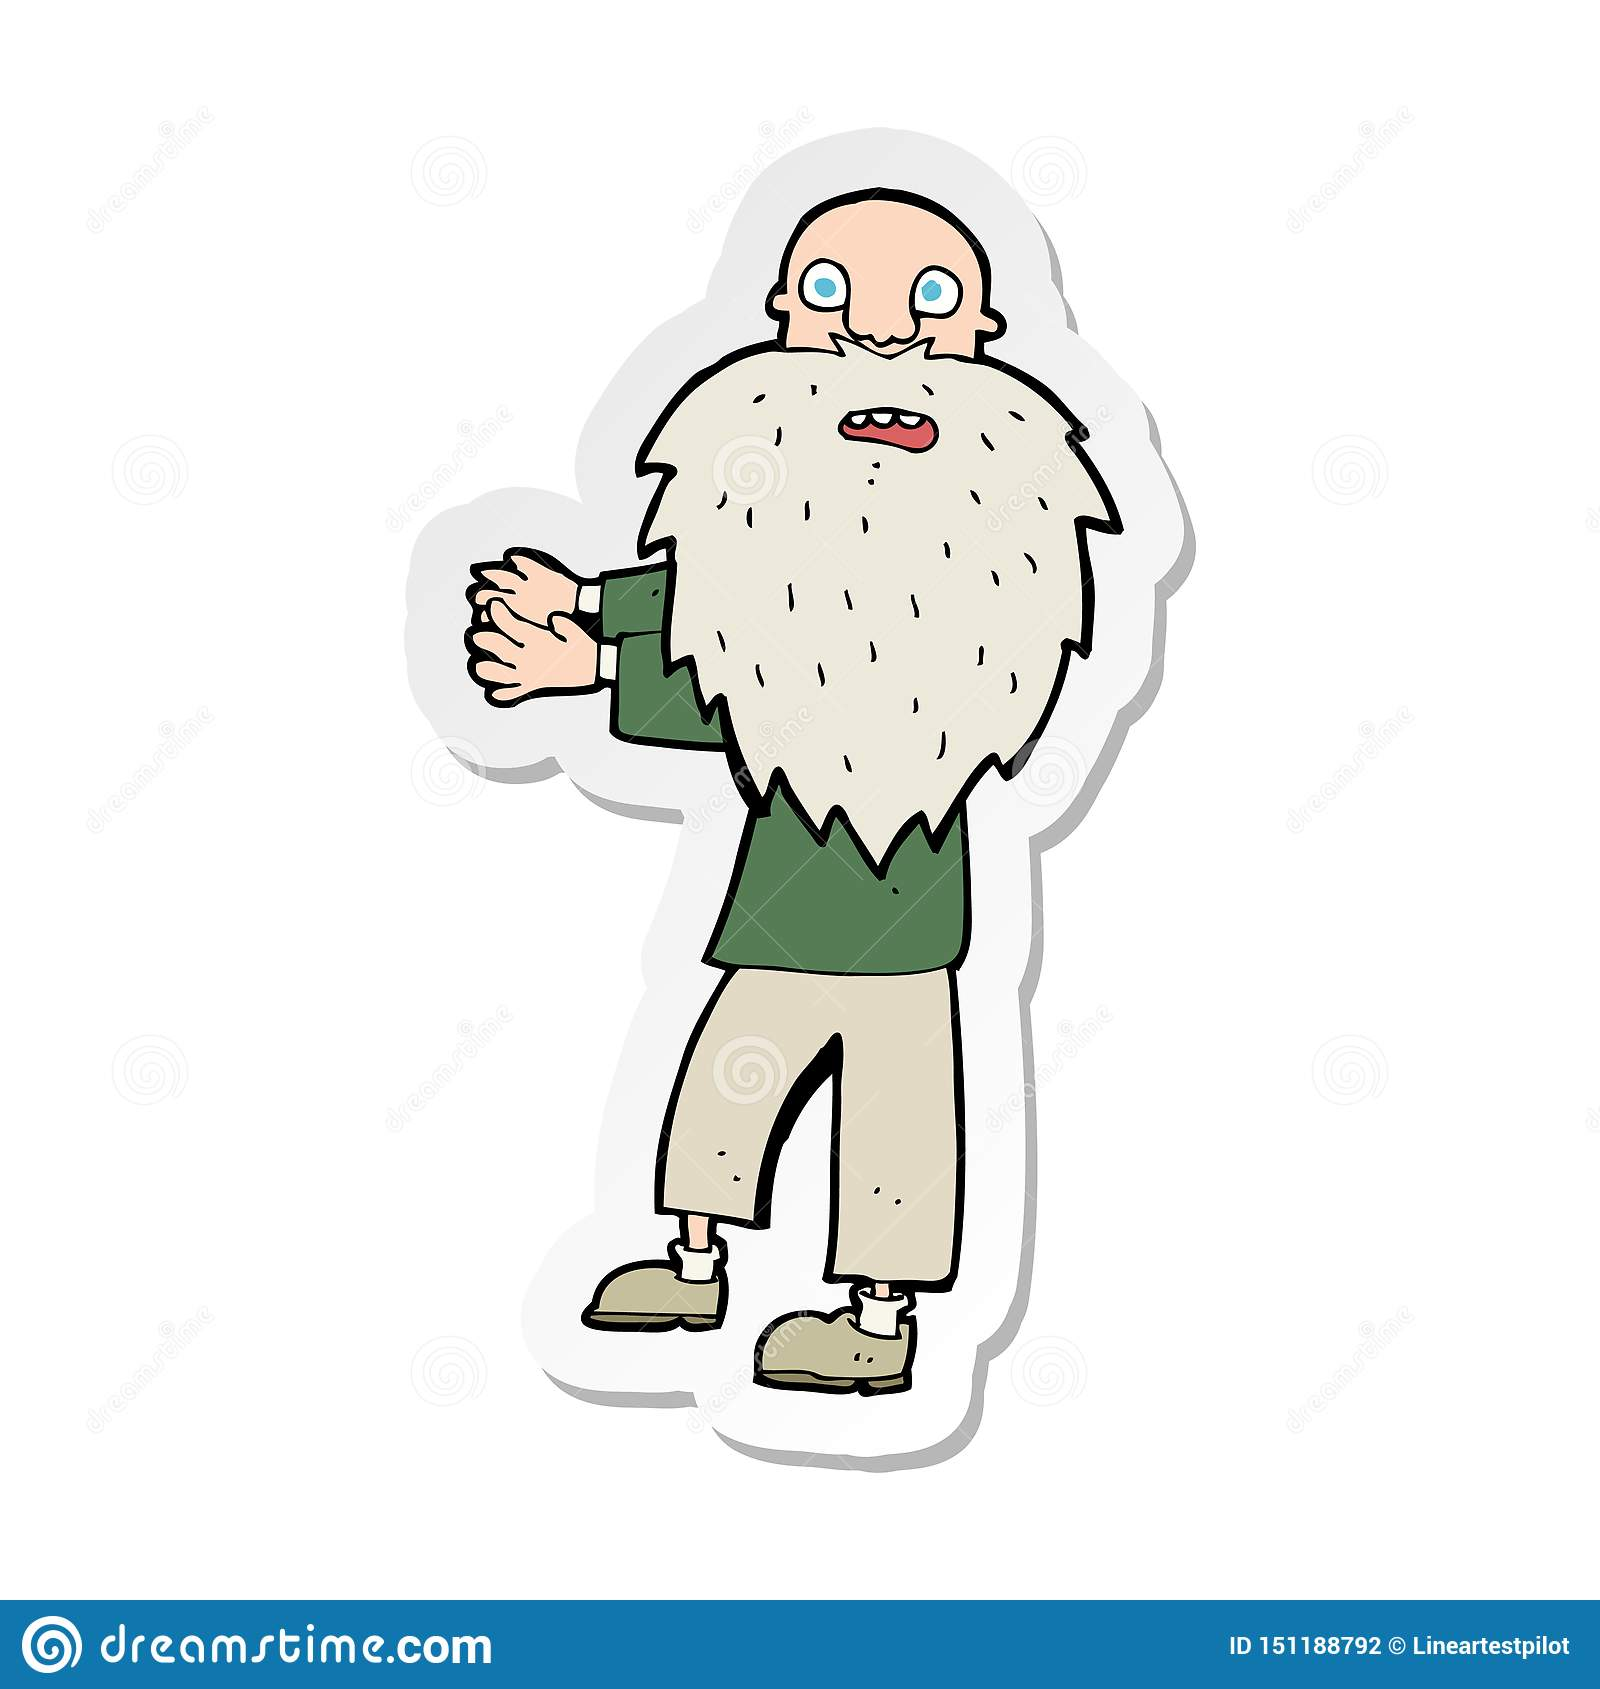 Cartoon Bearded Old Man Royalty Free Cliparts, Vectors, And Stock  Illustration. Image 24800508.